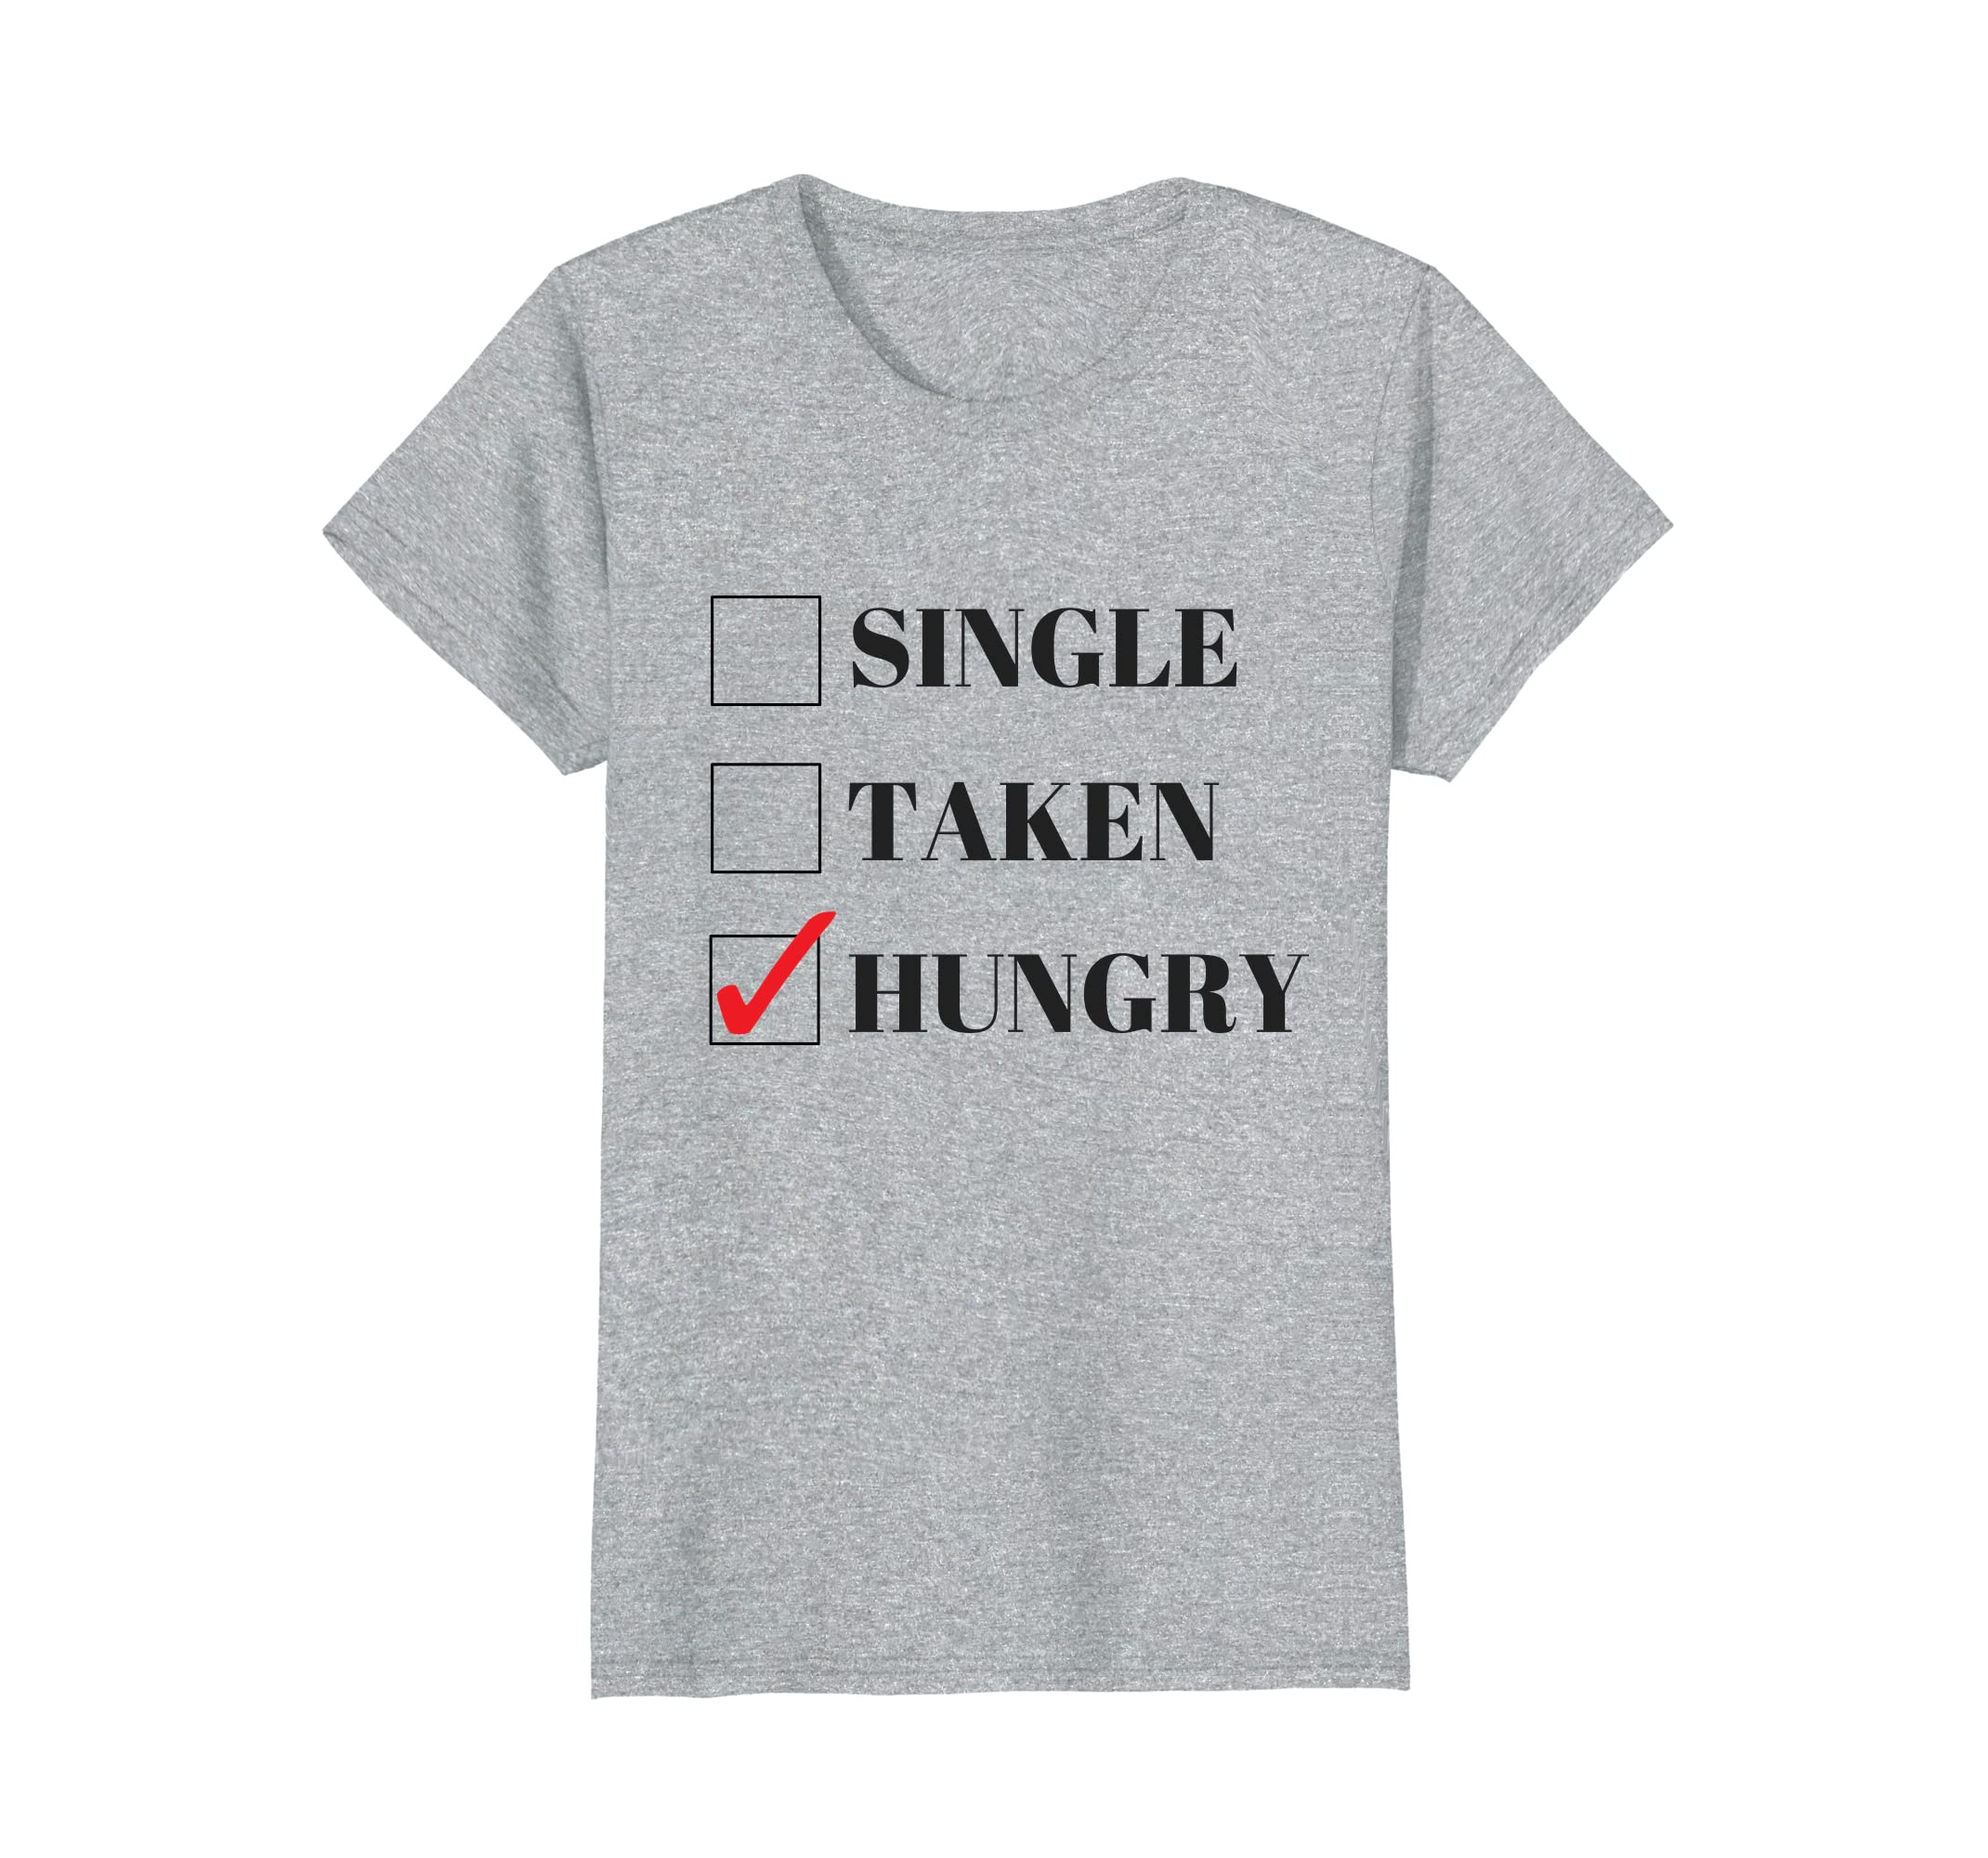 efb786e2611 Amazon.com: Single, Taken or Hungry Funny Valentines Day T-Shirt ...